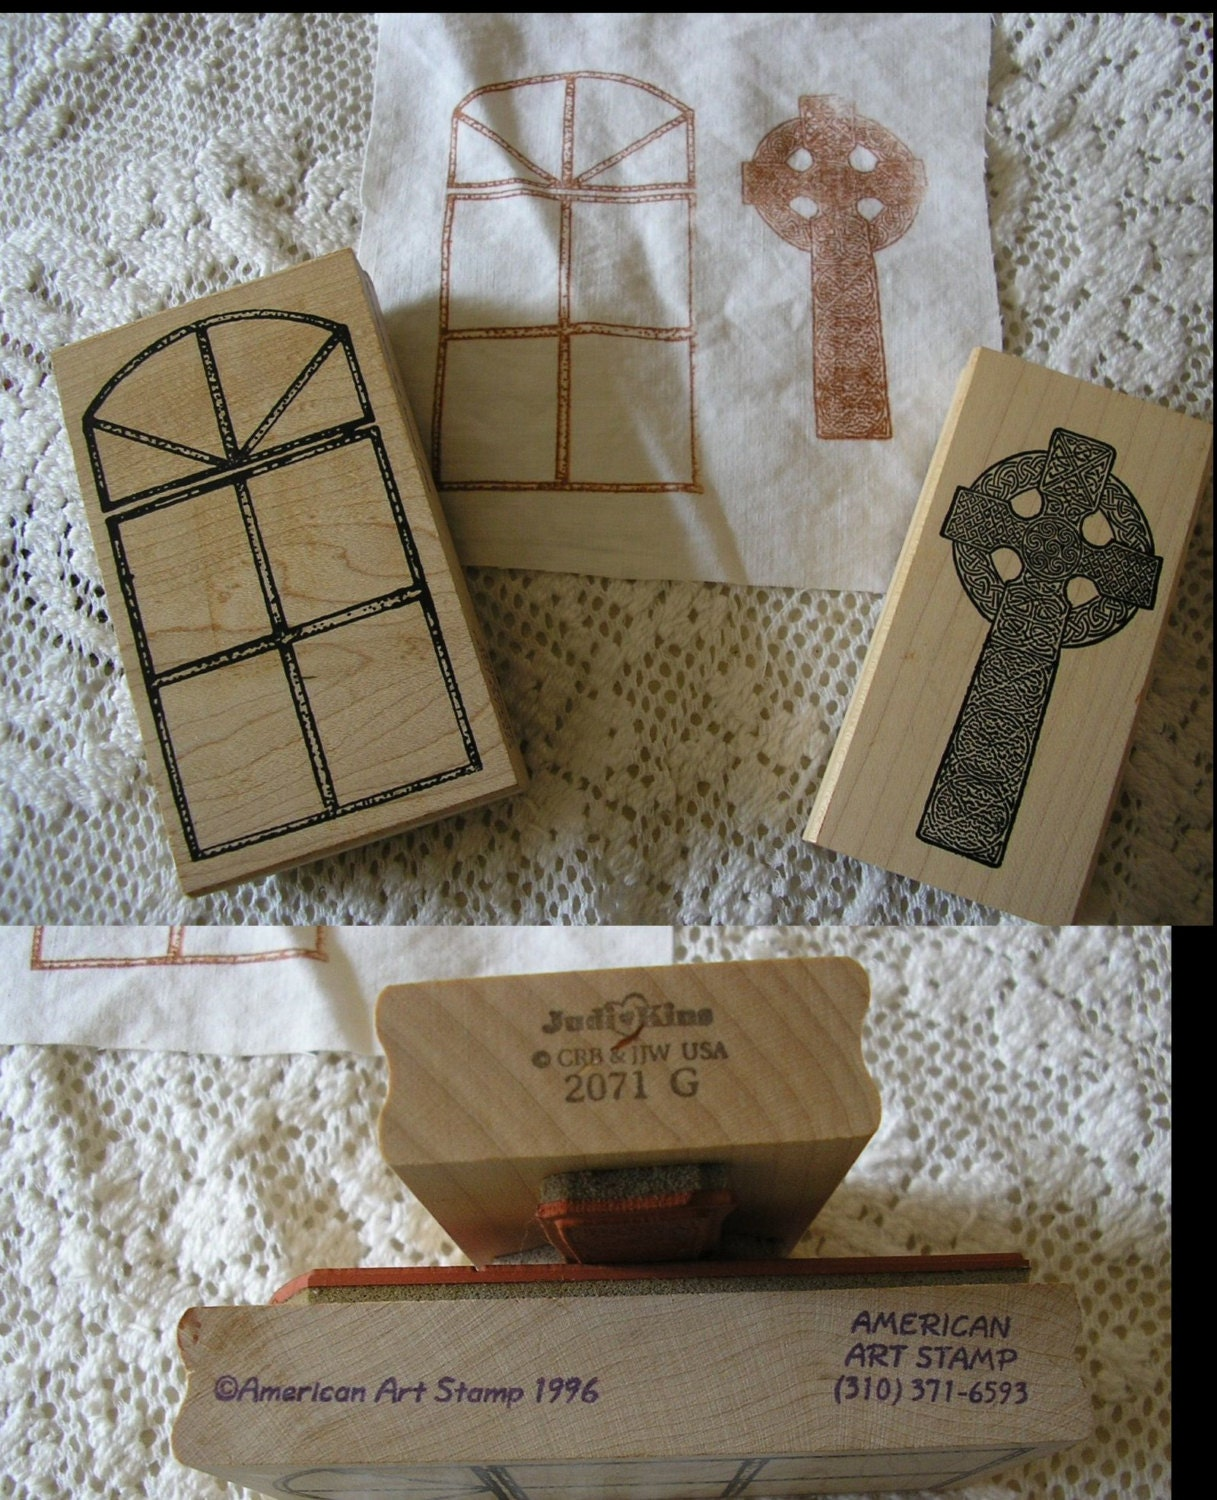 Rubber Stamp Art Projects Unavailable Listing on...